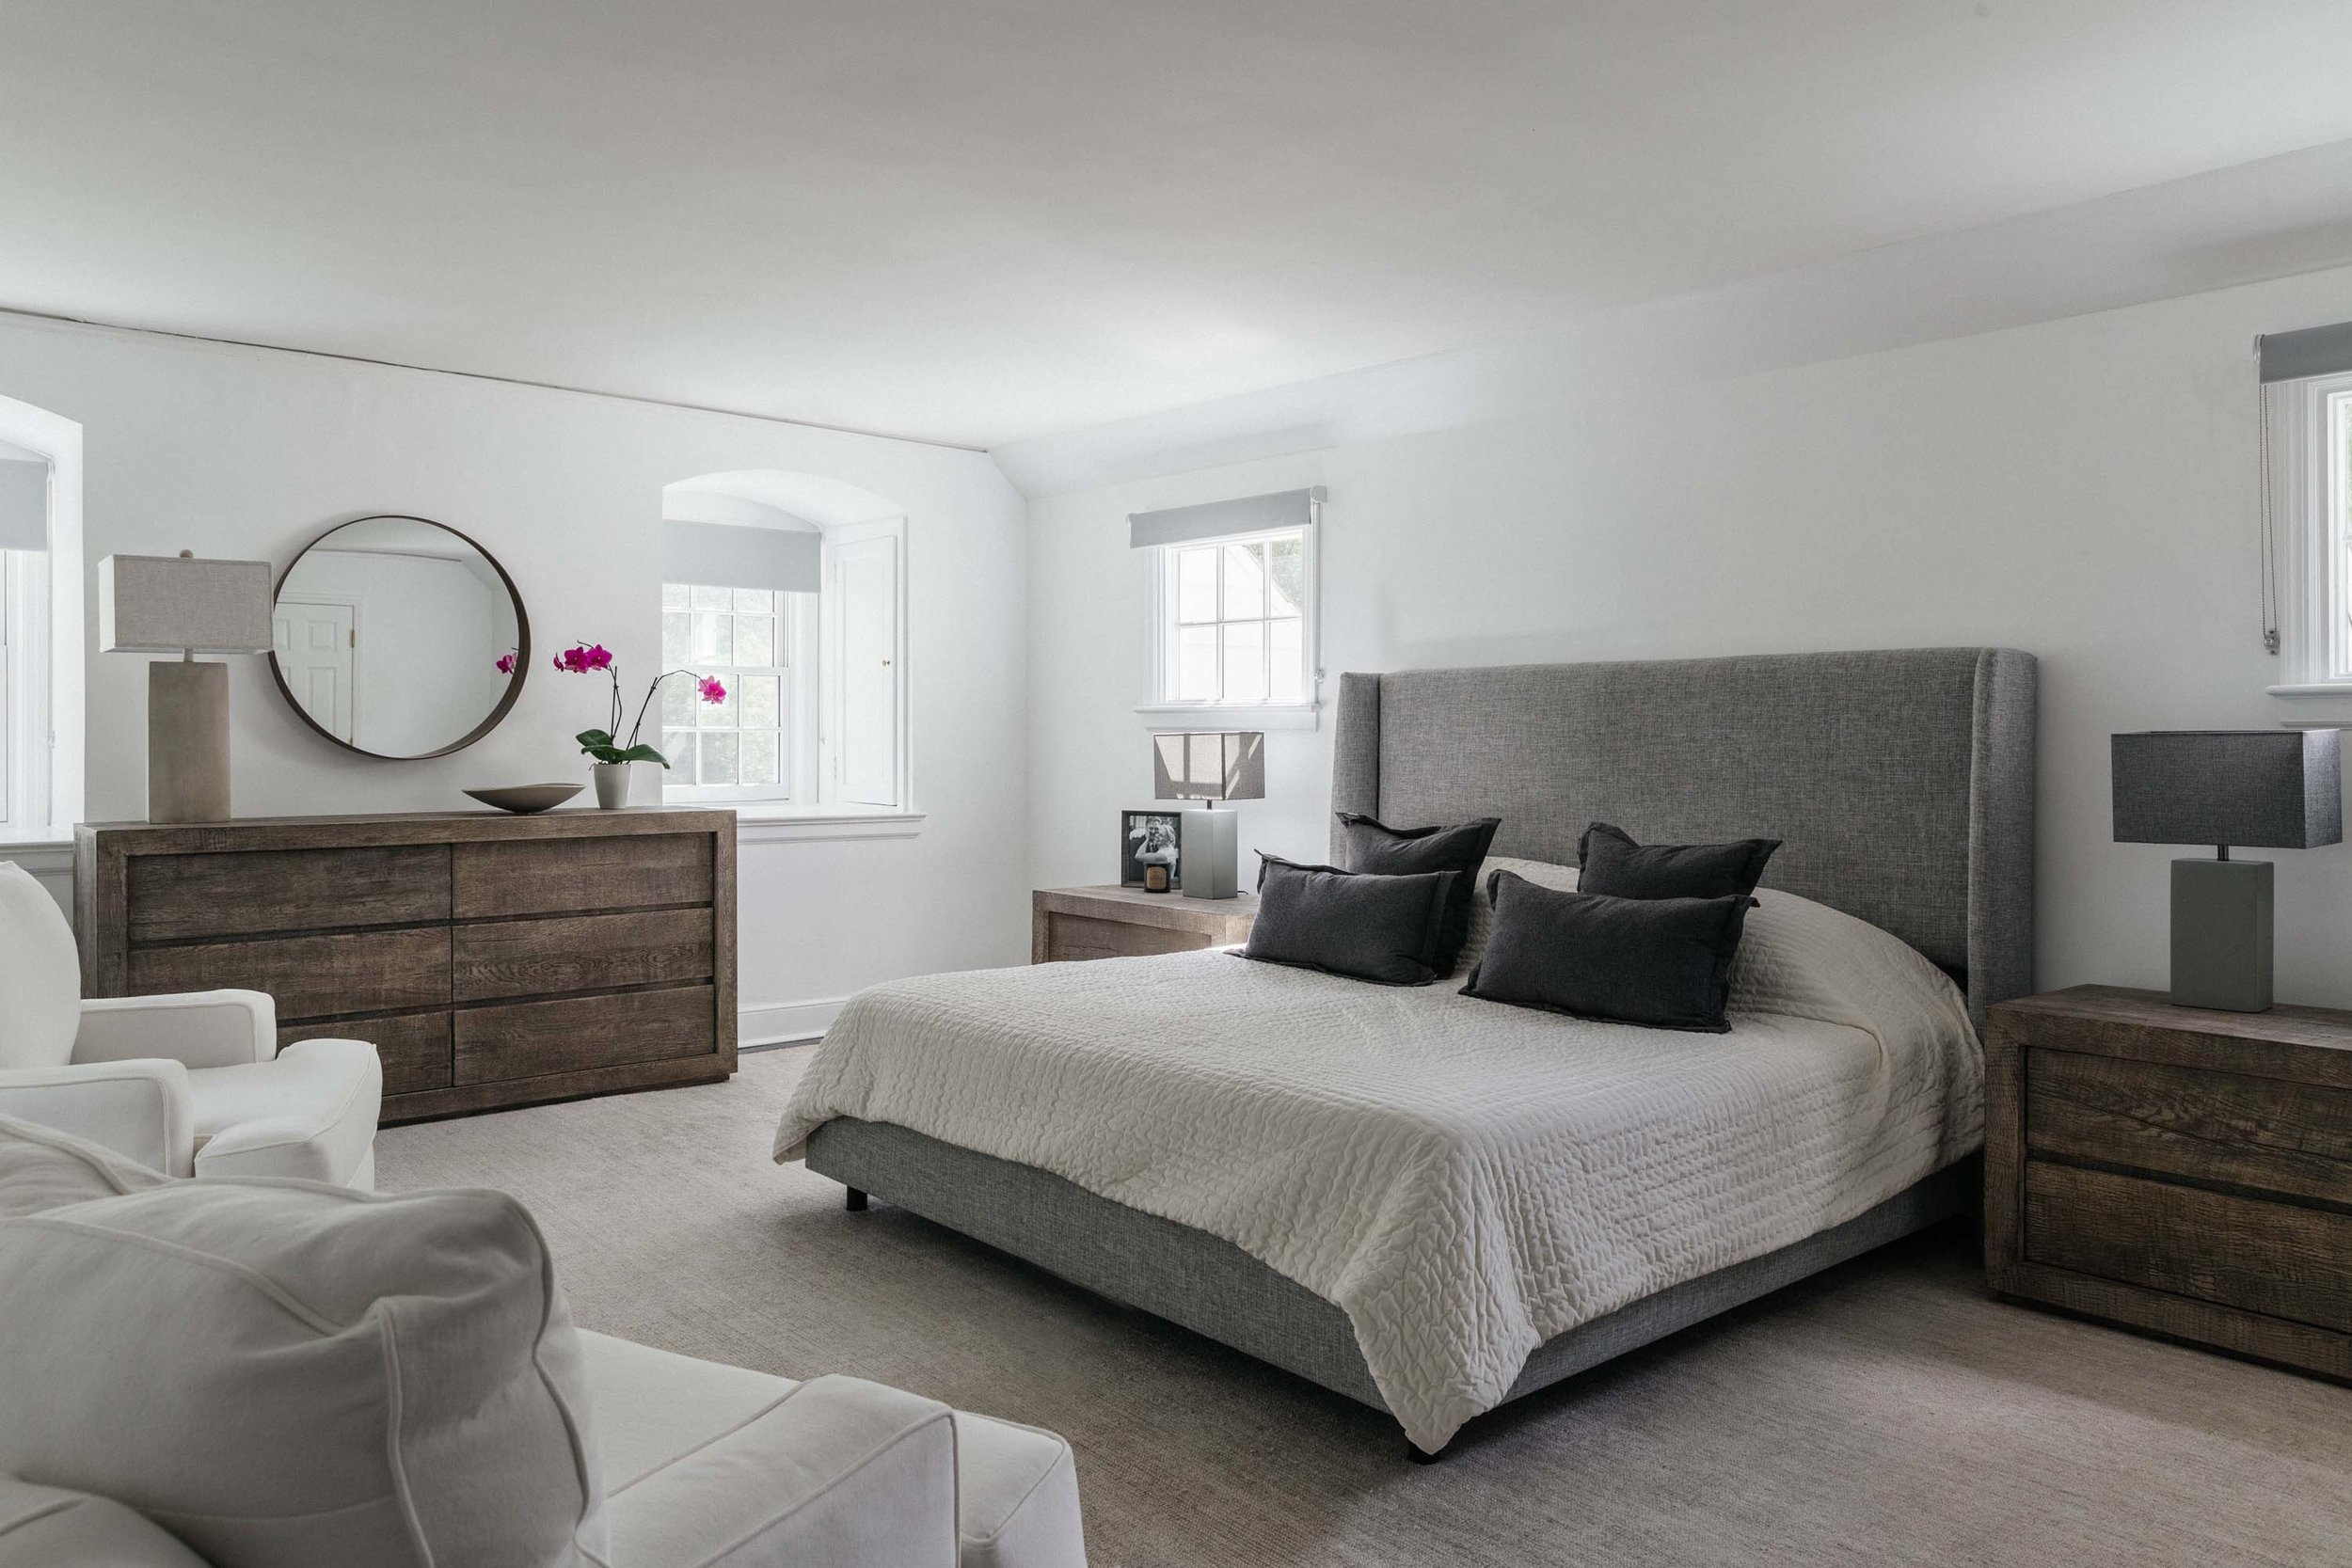 Modern bedroom with bed, bedside table and white painted walls